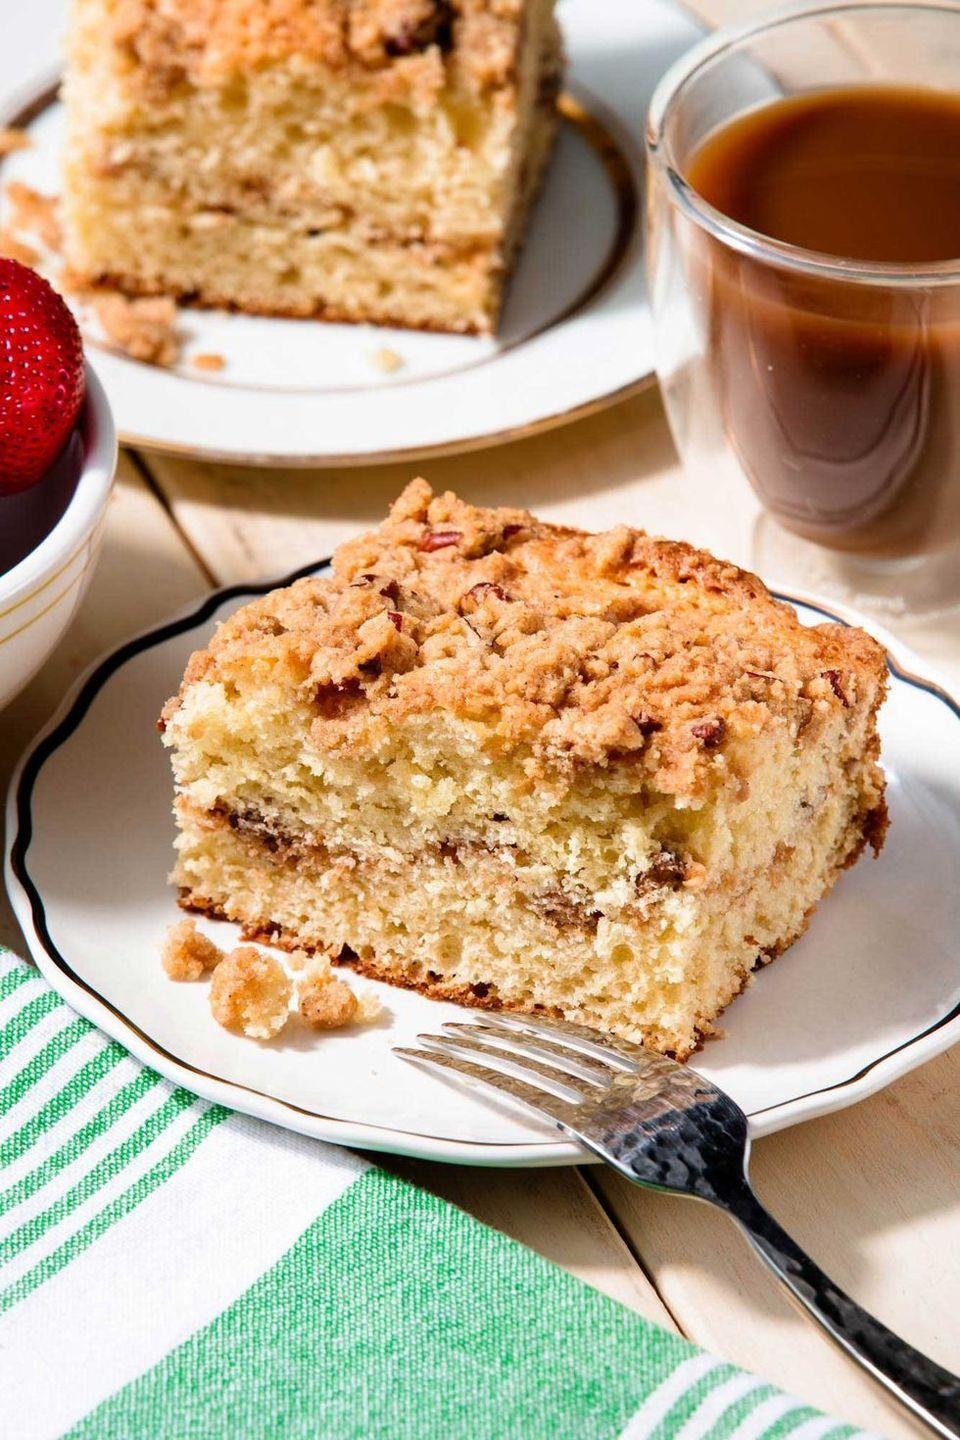 """<p>This coffee cake is bound to be the star of any afternoon tea spread. If needed, bake the night before and cover with a kitchen towel, that way it's ready to slice and serve ASAP.</p><p>Get the <a href=""""https://www.delish.com/uk/cooking/recipes/a29139335/easy-coffee-cake-recipe/"""" rel=""""nofollow noopener"""" target=""""_blank"""" data-ylk=""""slk:Classic Coffee Cake"""" class=""""link rapid-noclick-resp"""">Classic Coffee Cake</a> recipe.</p>"""